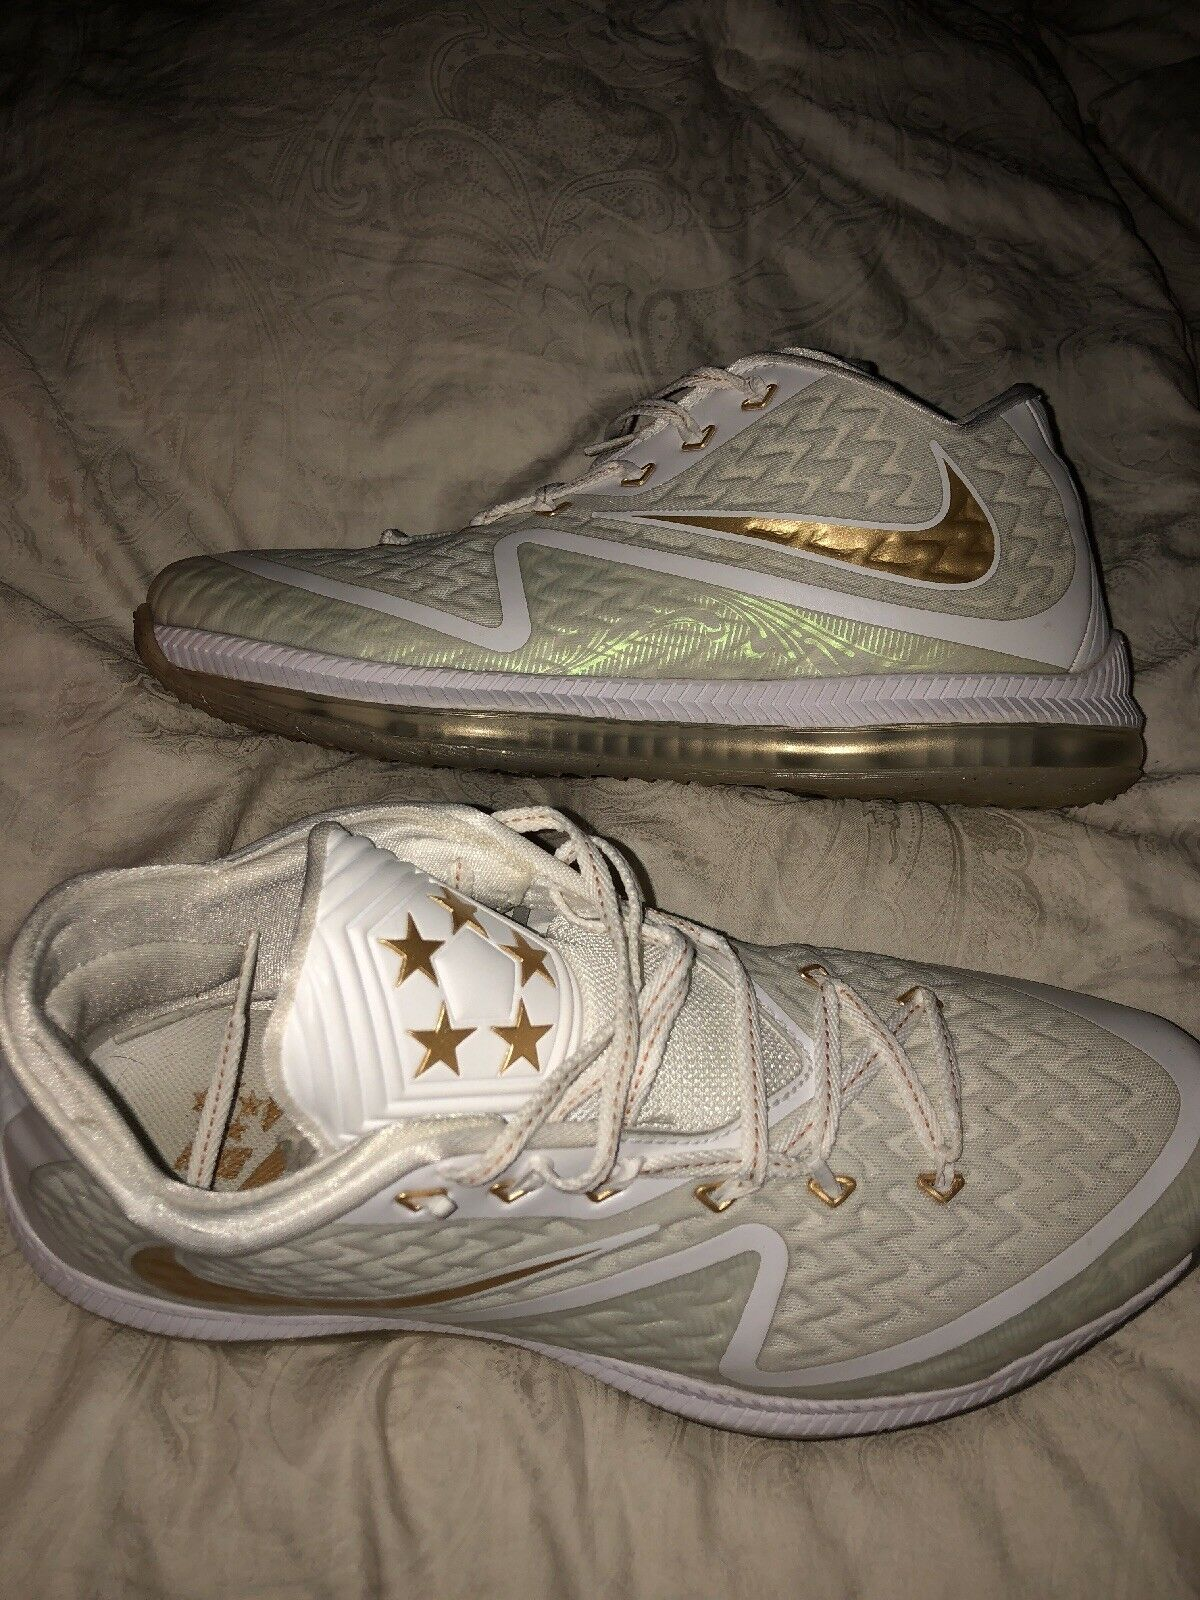 Nike sneaker field general 2 size 11.5 Us 45.5 eu white gold authentic